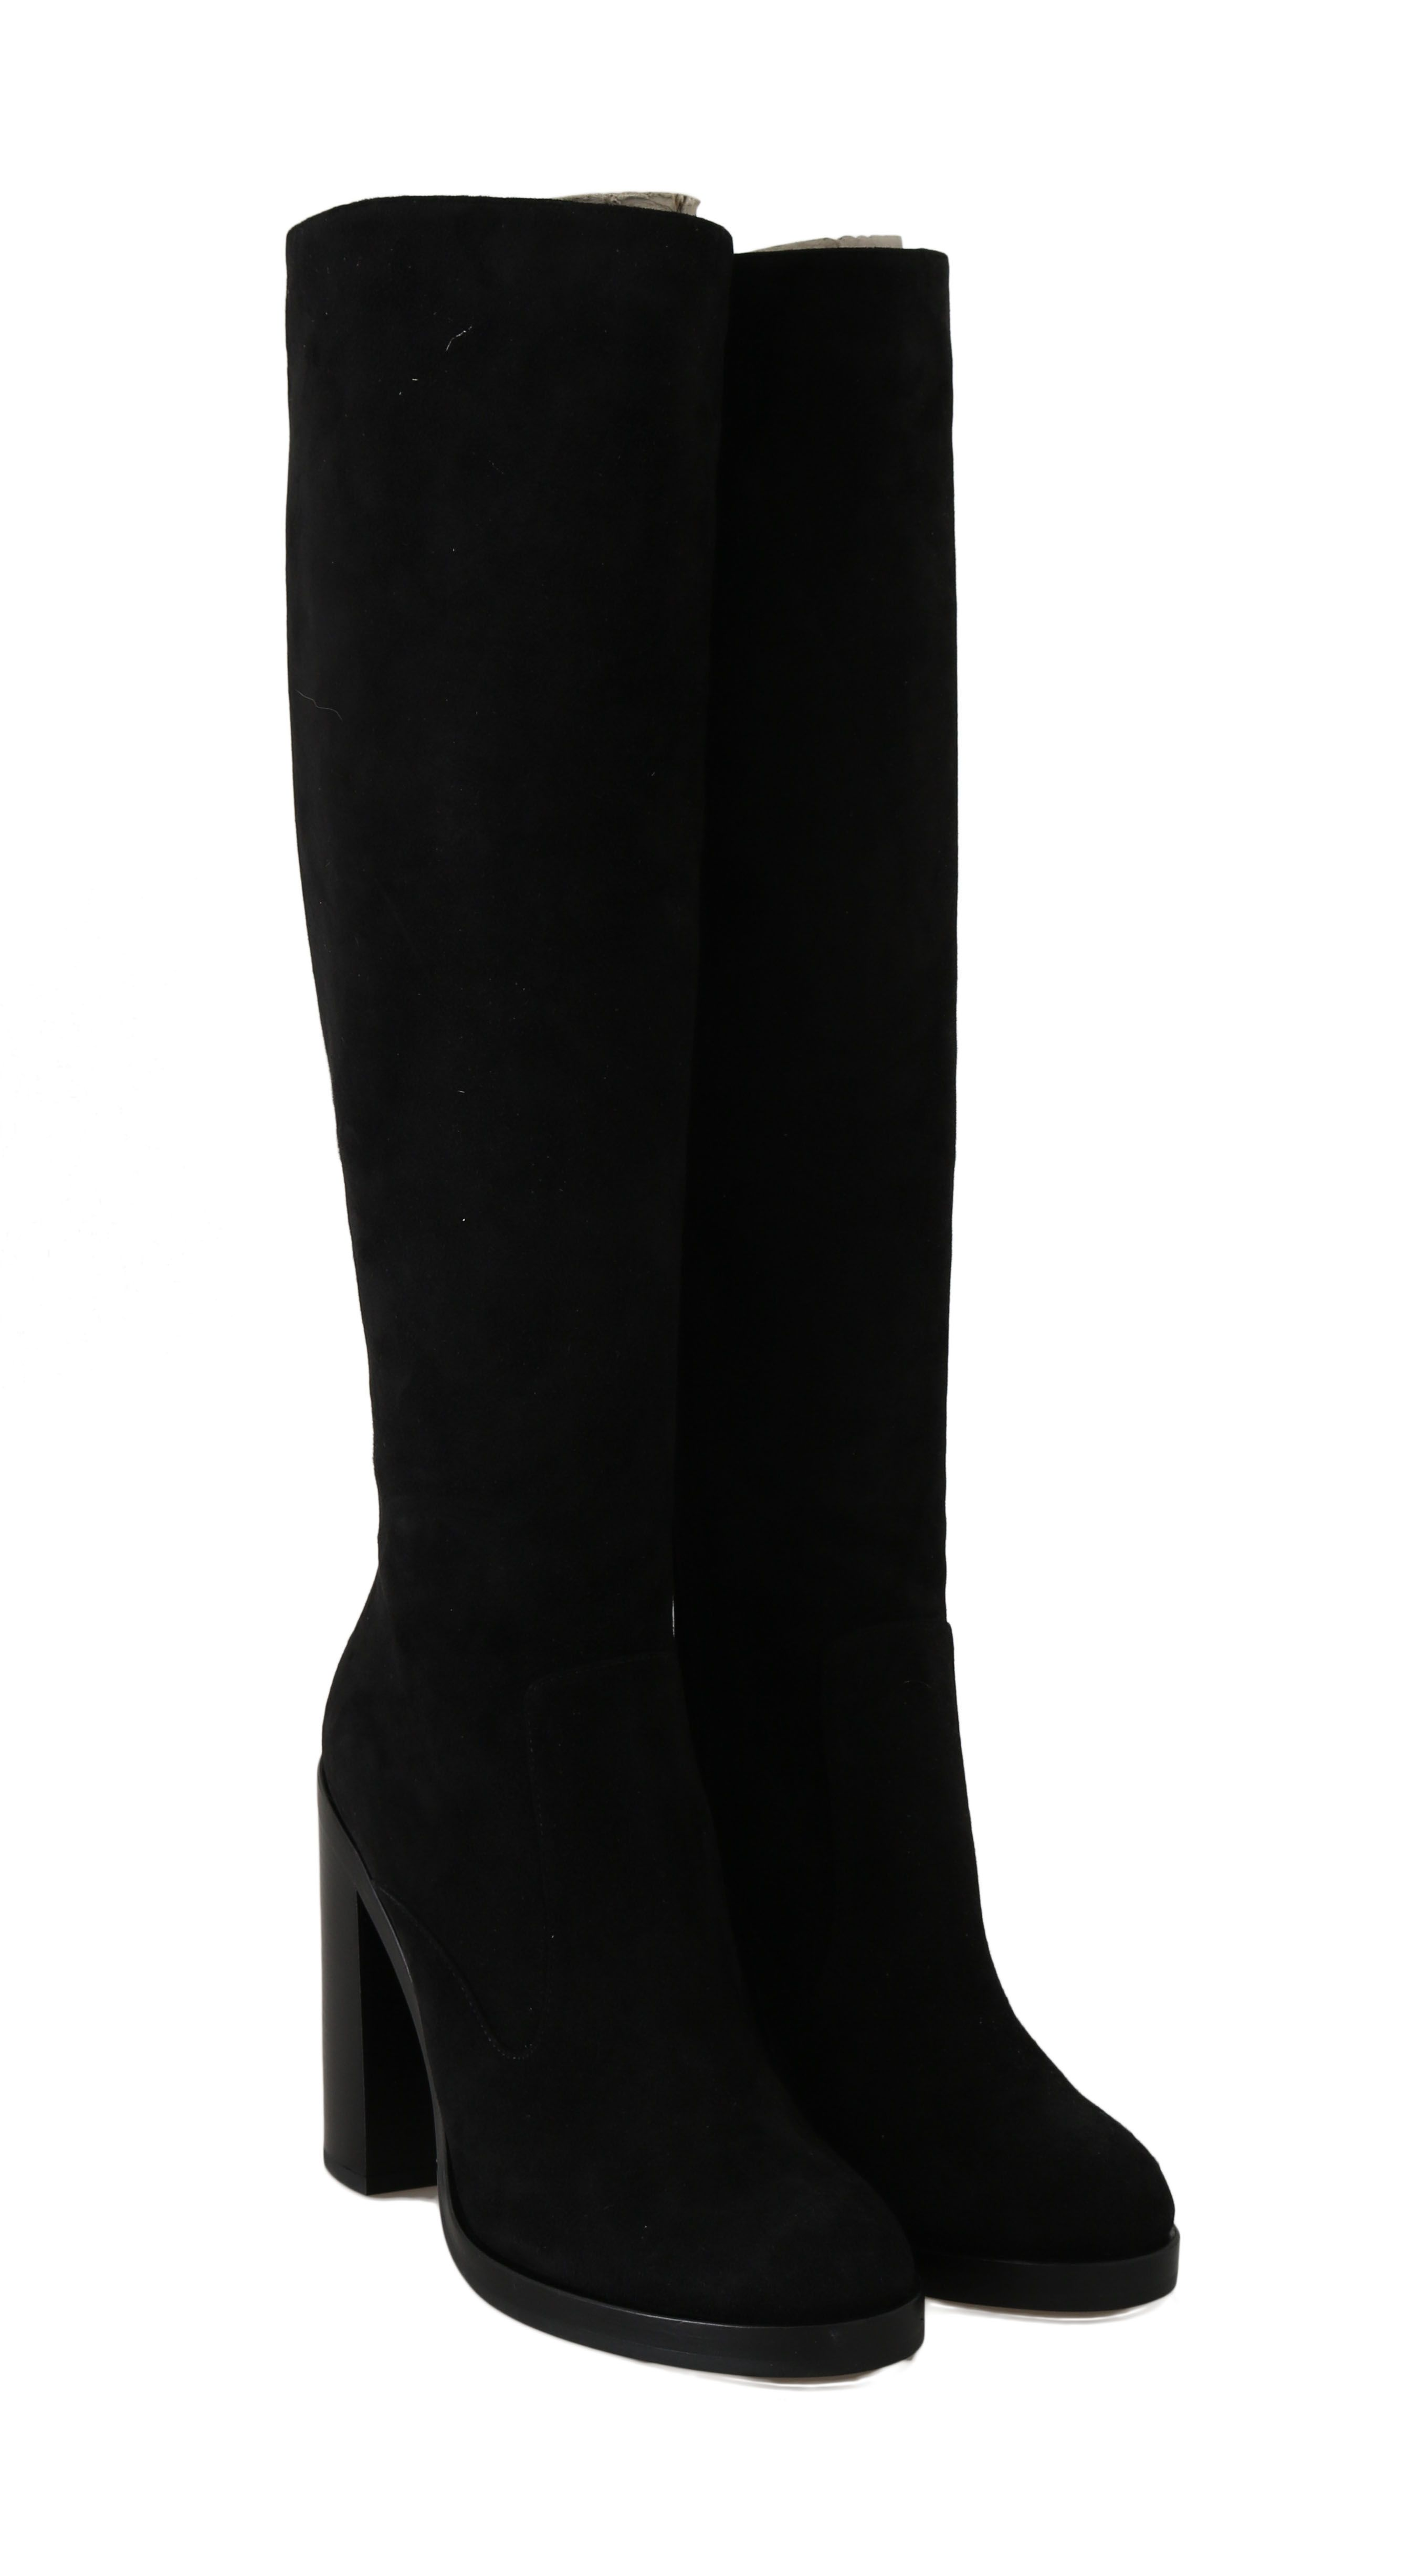 Dolce & Gabbana Black Suede Leather Knee High Boots